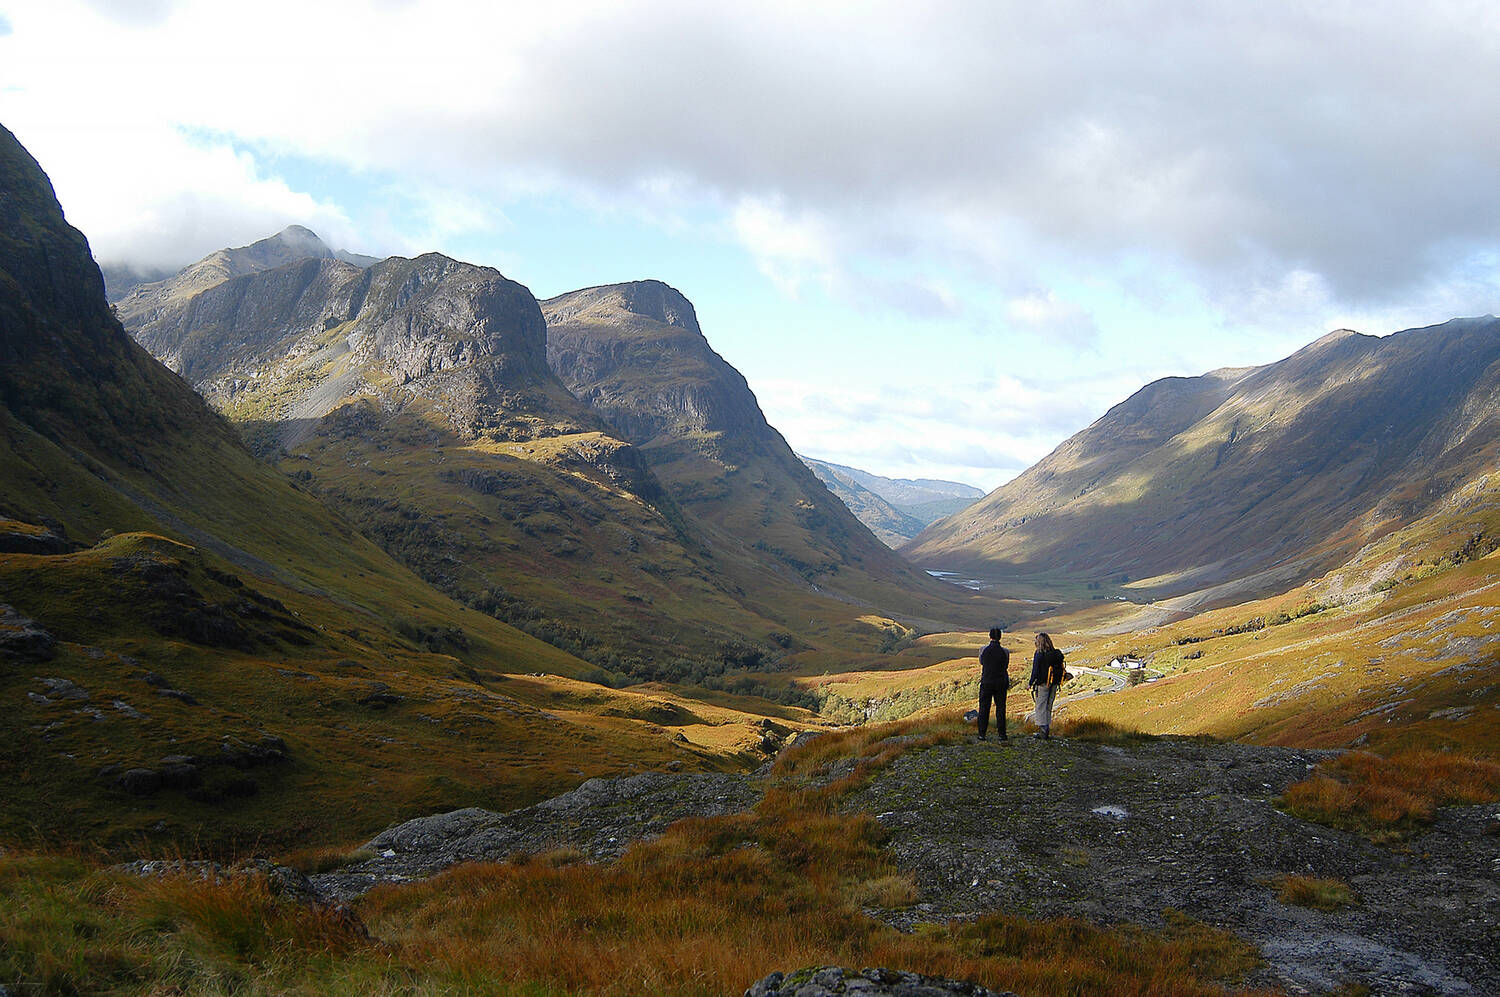 The 3 Sisters mountains at Glencoe